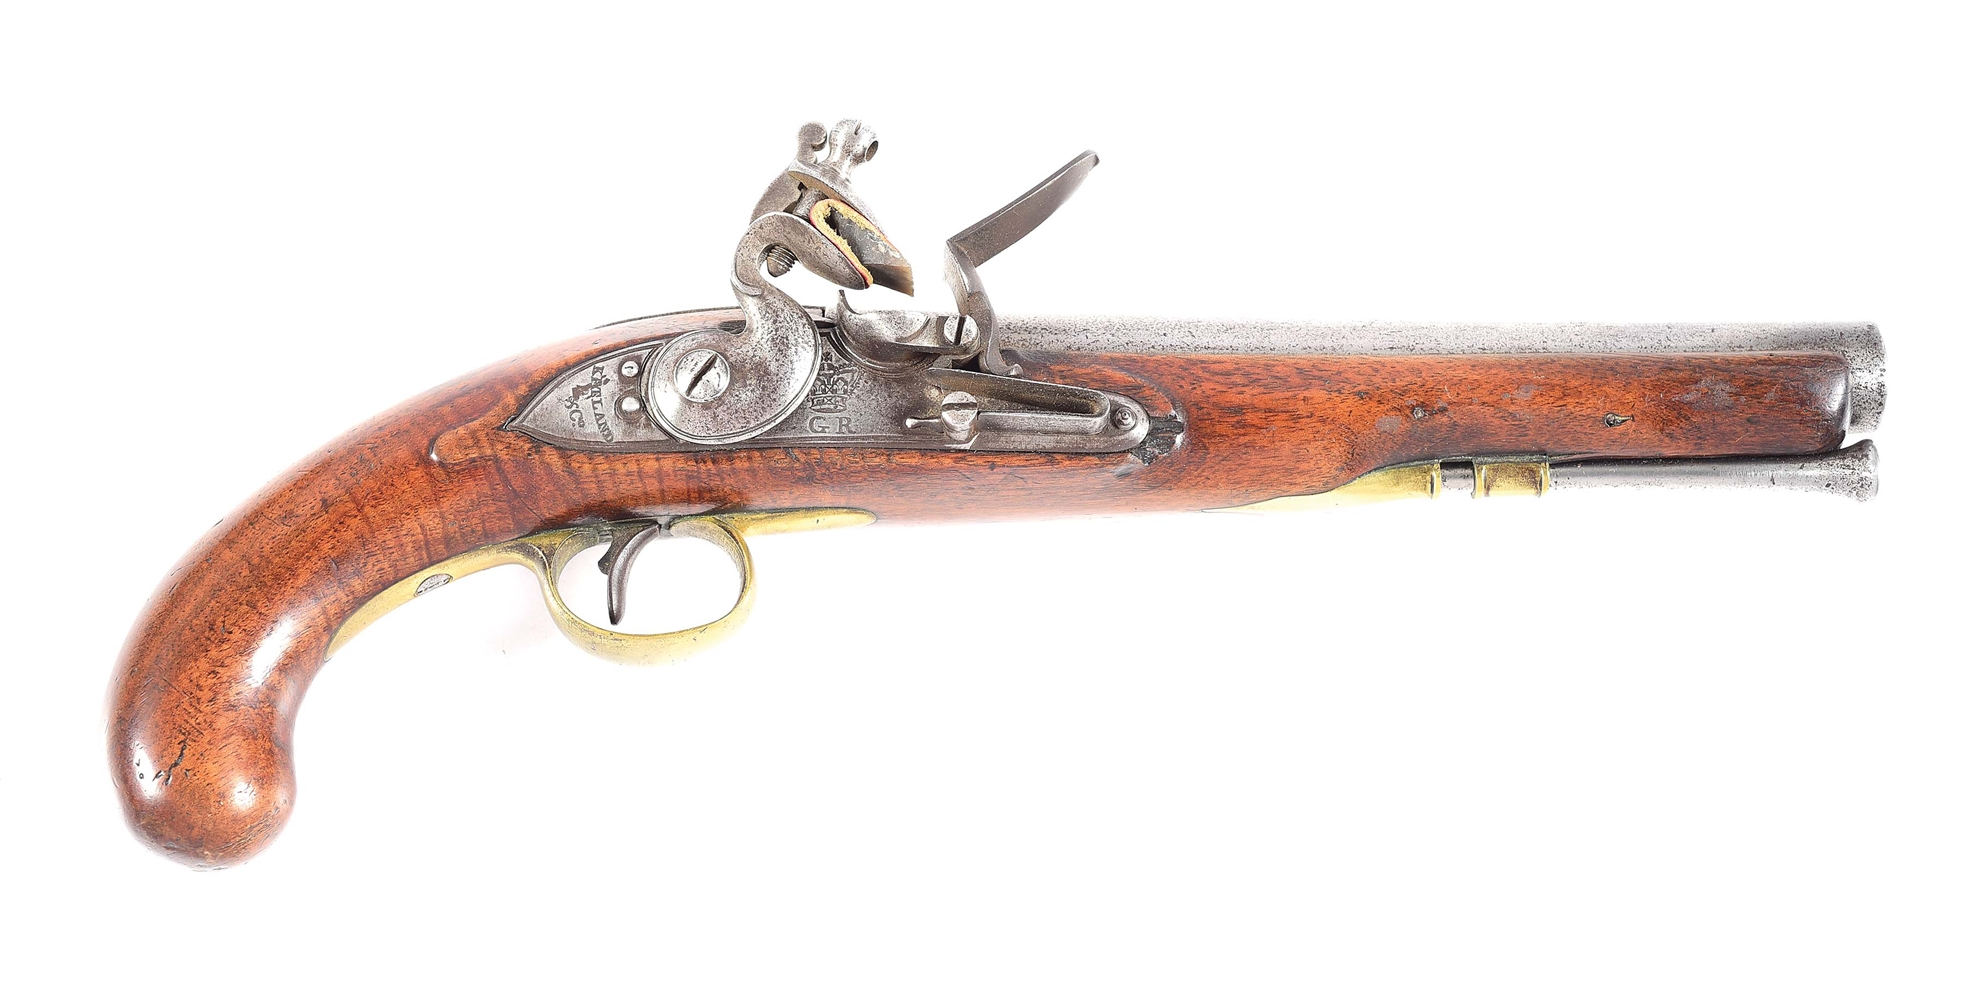 (A) A BRITISH HEAVY DRAGOON FLINTLOCK PISTOL BY KETLAND & CO.